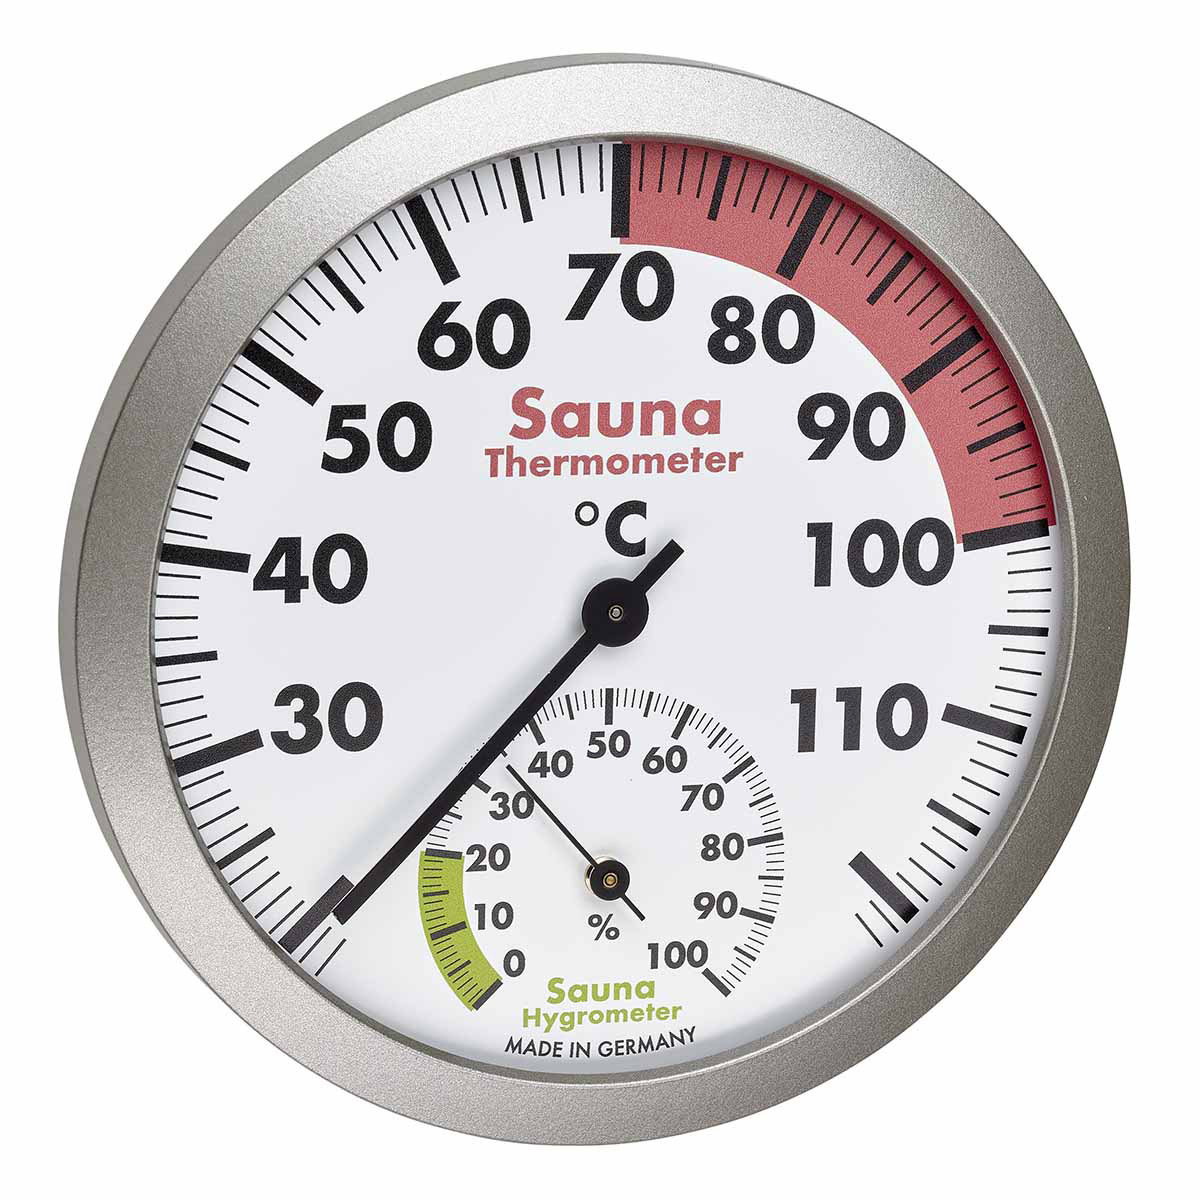 40-1055-50-analoges-sauna-thermo-hygrometer-1200x1200px.jpg